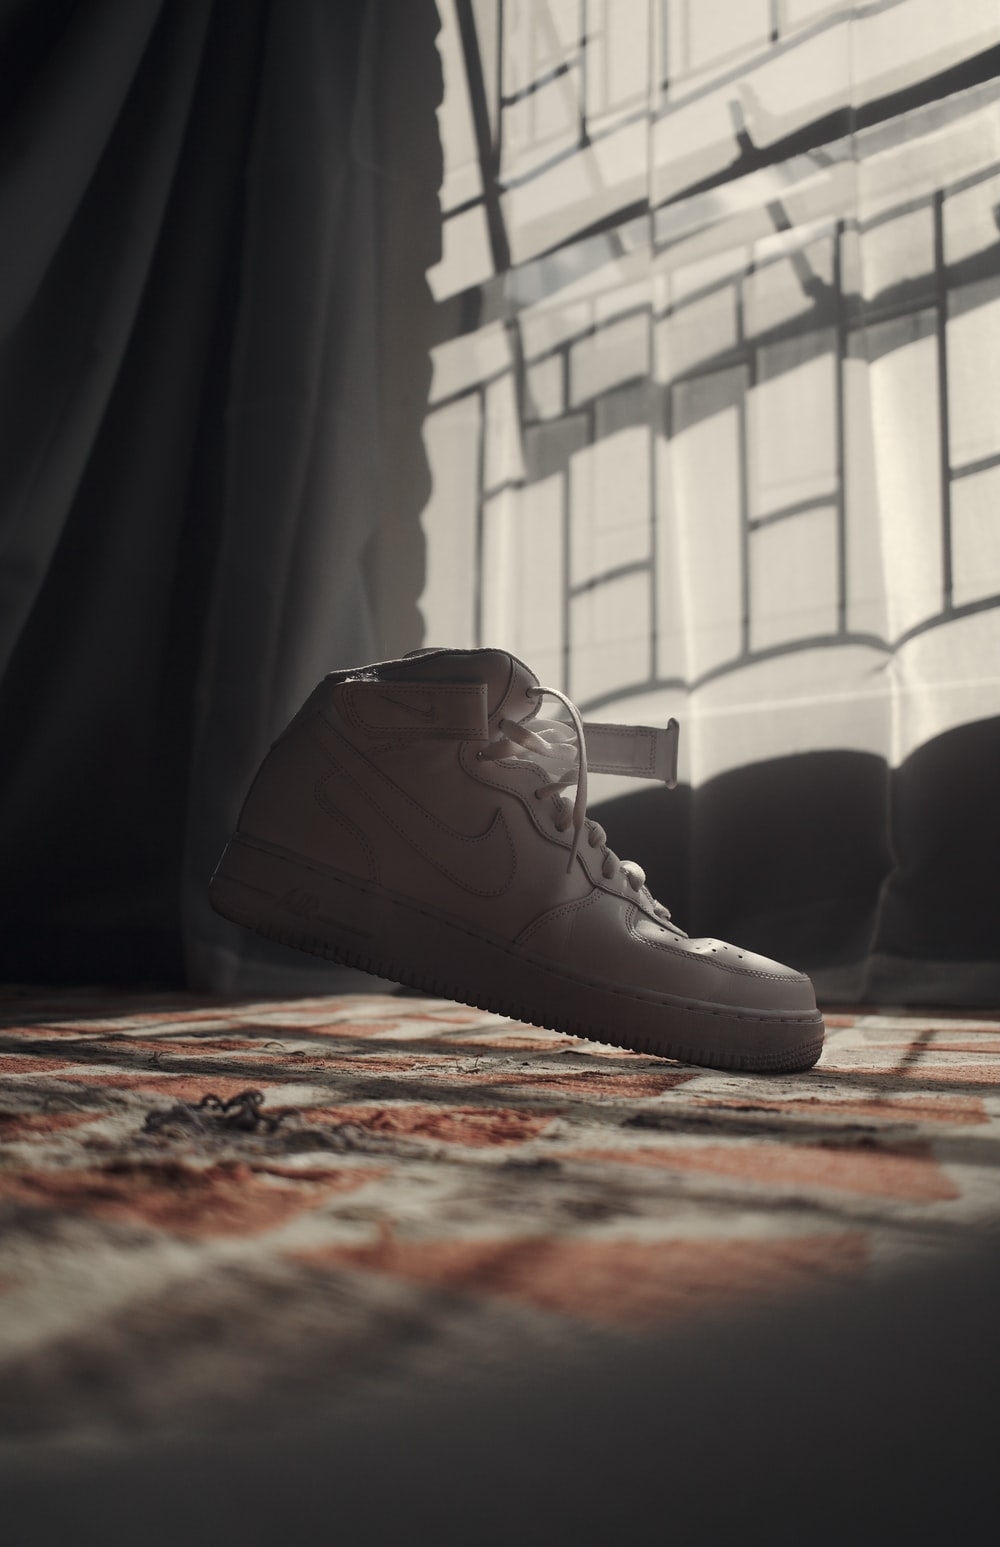 black leather lace up boots on red and brown area rug